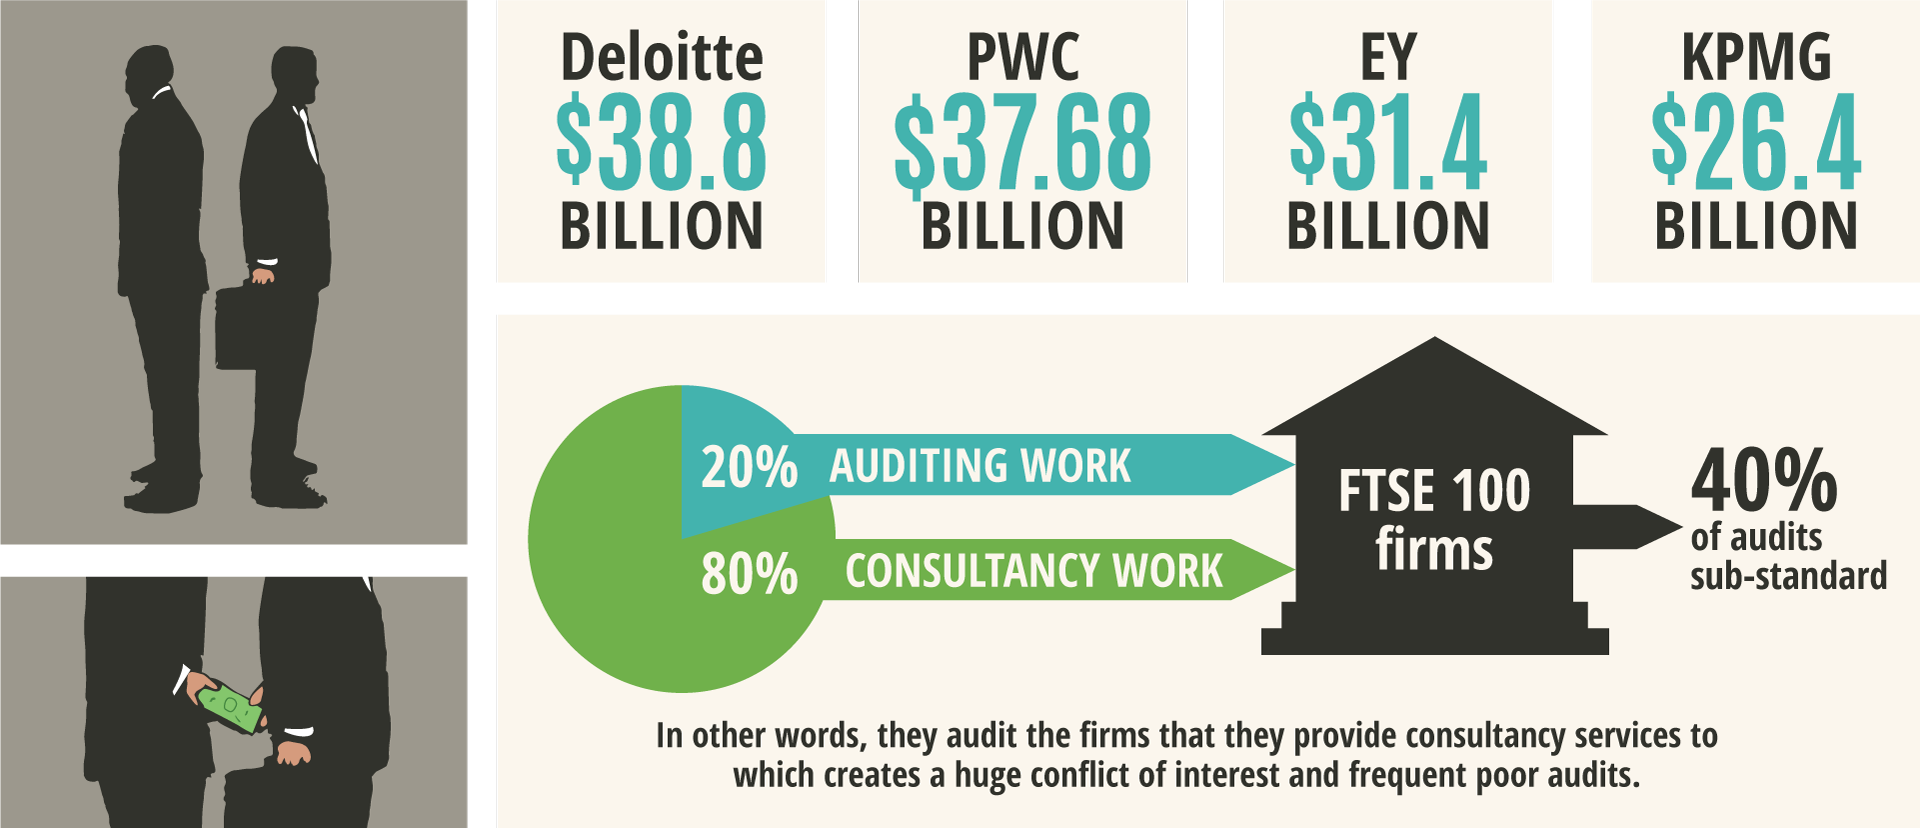 Audited by insiders